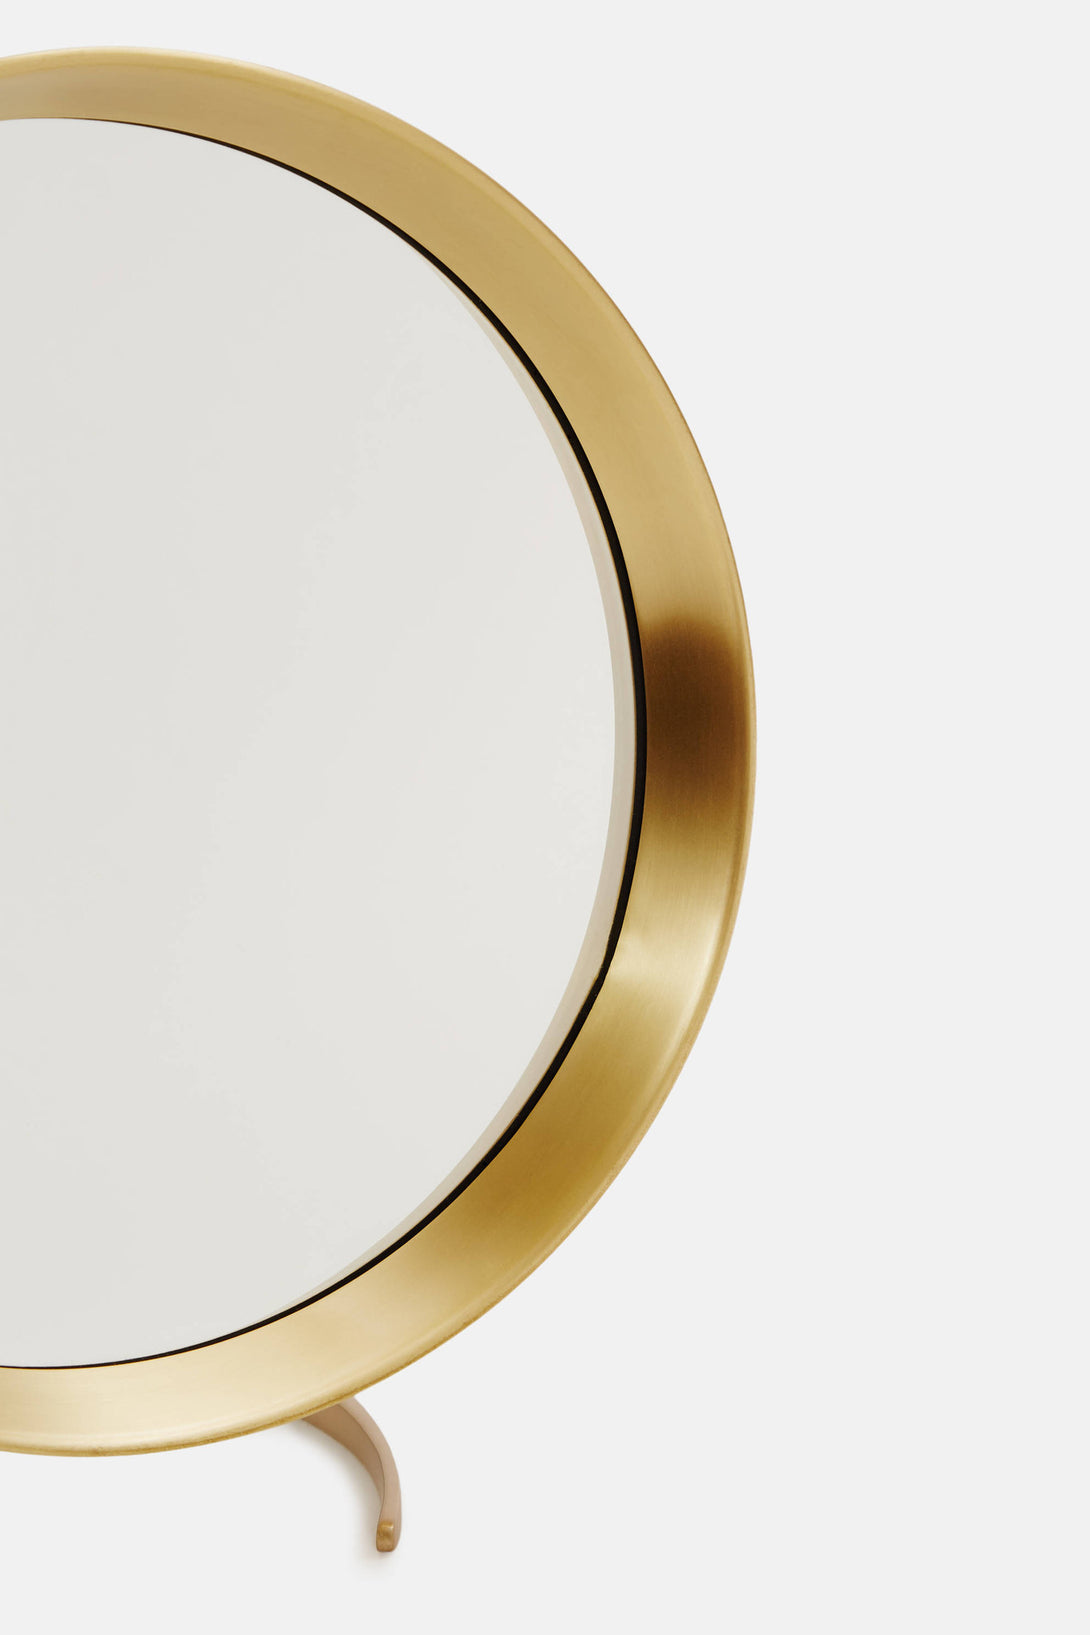 ... Brass Tabletop Mirror with Stand ...